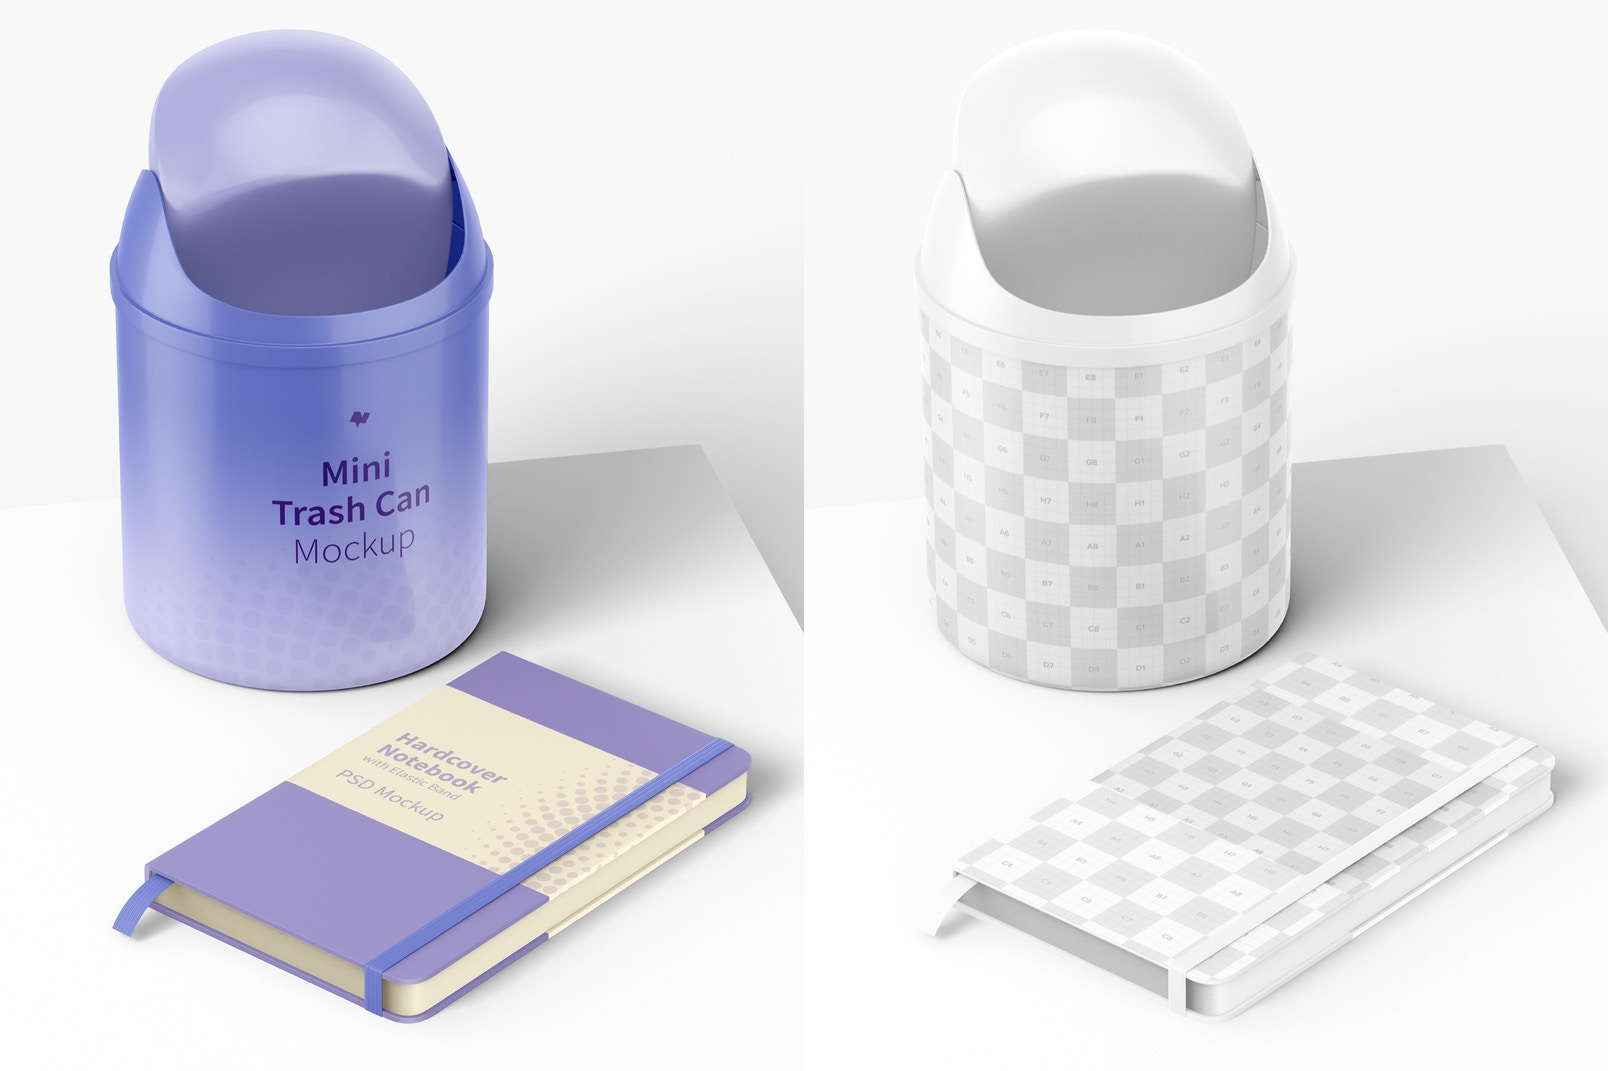 Mini Trash Can Mockup with Notebook